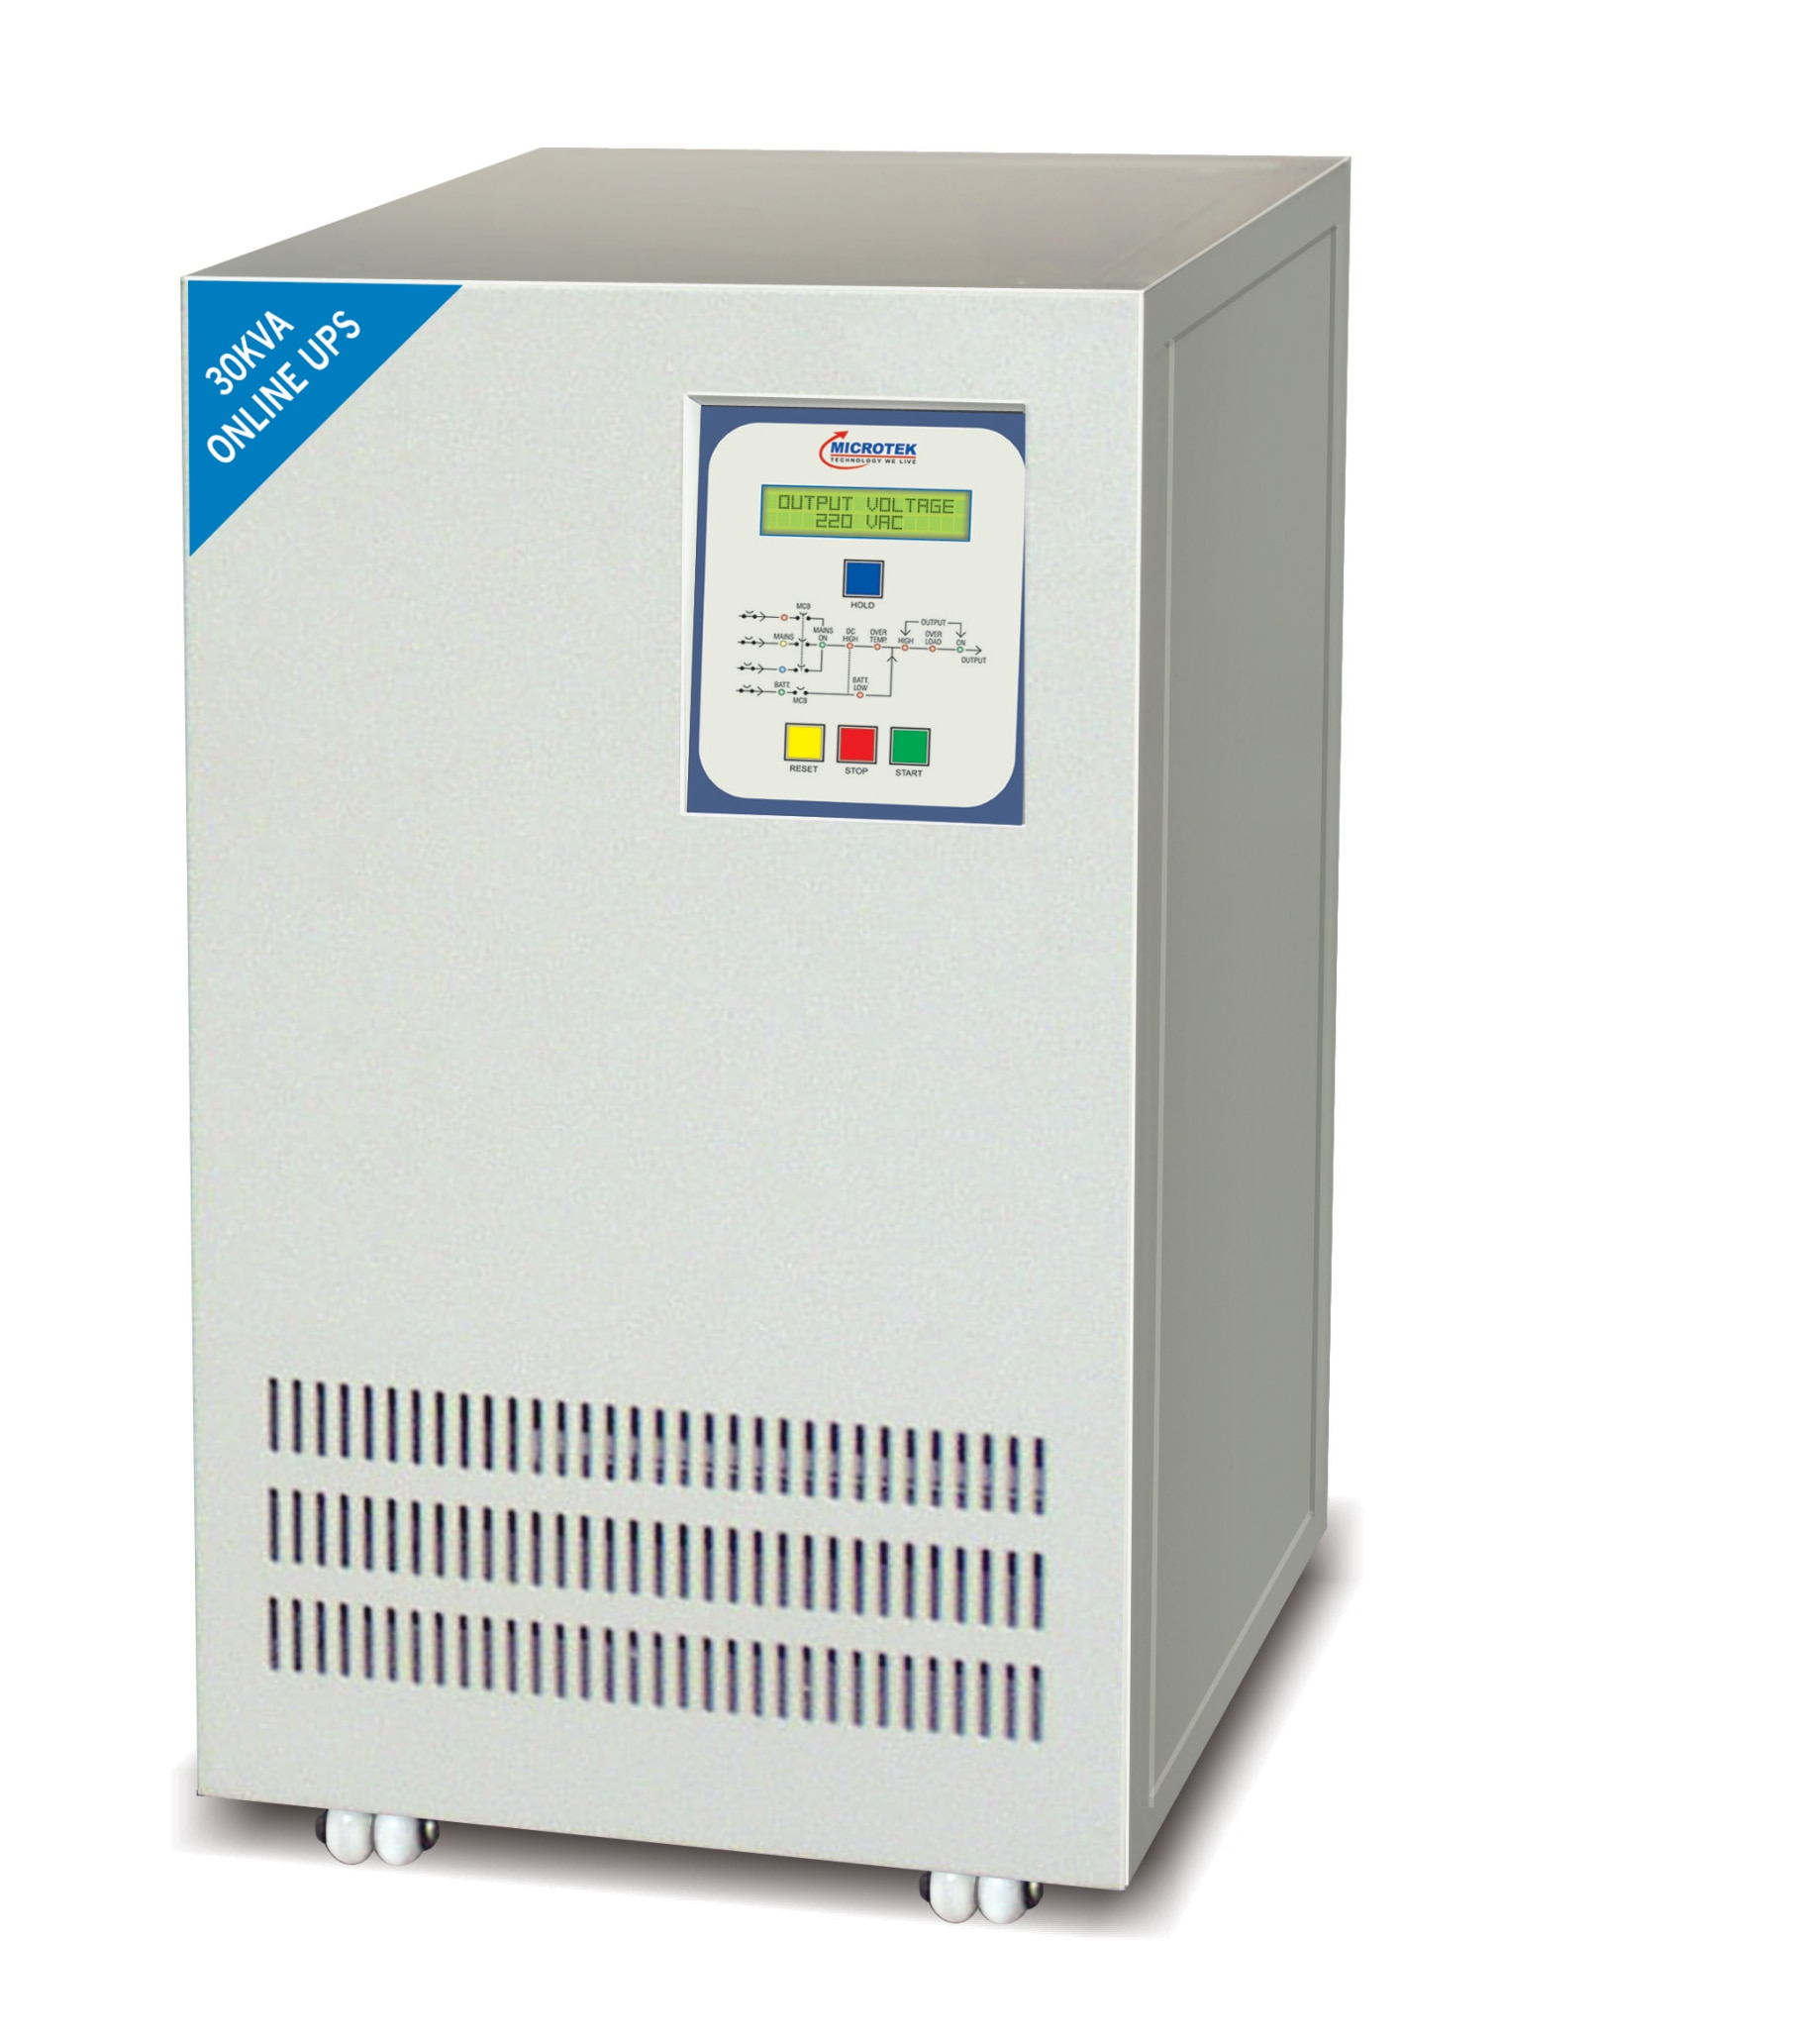 SuperMax-Series-I Capacity:5KVA to 30KVA Technology:Double Conversion High Freq. switching PWM, using IGBT's Battery: DC Voltage:180/360 VDC Mimic Control Panel:LED for UPS status and LCD for Voltage, Current & Frequency Audible Alarm:For Battery Low/DC High/Output High/Overload Communication Interface:RS232; SNMP(optional) Optional:Hot Stand By NM36MX1KK11-1B 1KVA / 800W NM36MX1KK11 1KVA / 800W NM72MX2KK11 2KVA / 1600W NM72MX3KK11 3KVA / 2400W SUPERMAX-SERIES-I SUPERMAX-SERIES-II Features Specifications Request for Home Delivery True Online Double Conversion Technology  High end IGBT based  High end Micro Controller  Automatic battery charging in UPS off mode  Wide Input voltage range  Advanced Battery Management  Short Circuit and Overload Protection  Hot Standby. (optional)  Galvanic Isolation  WE are best distributor for Microtek UPS at Delhi & NCR